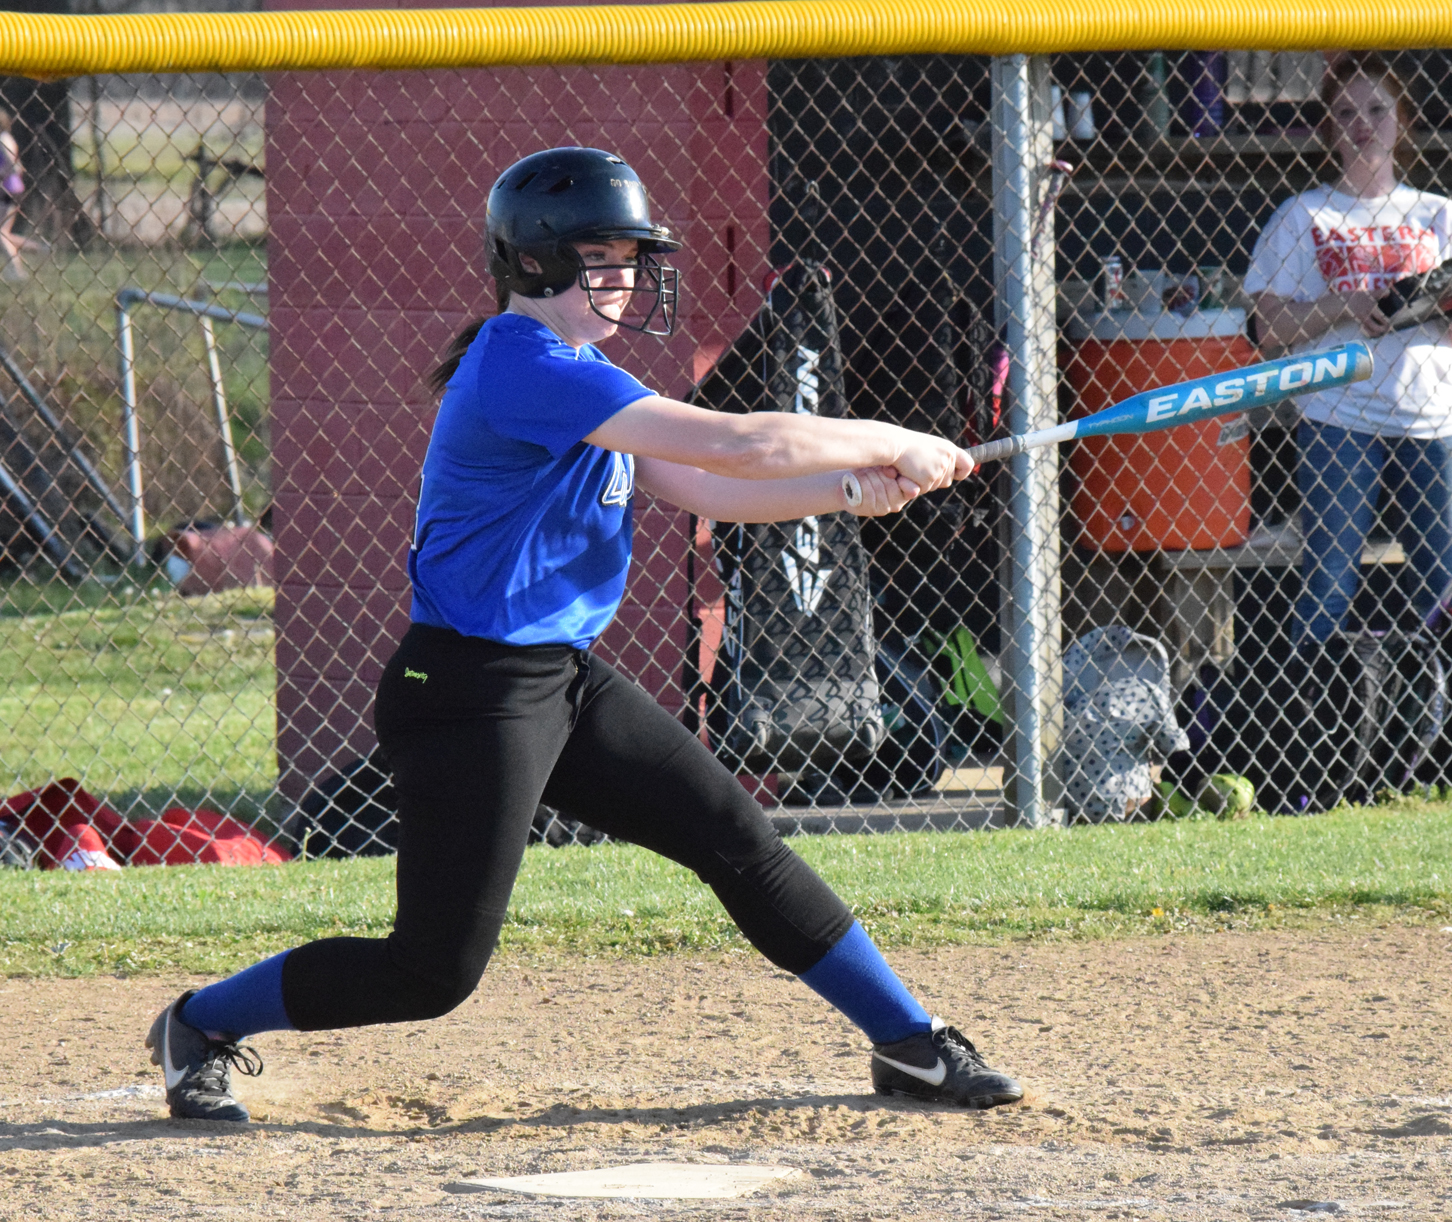 Ripley's Abby Lewis scored a run and tallied three hits, including a triple, in the second game of a doubleheader Saturday against New Richmond. Photo by Garth Shanklin.